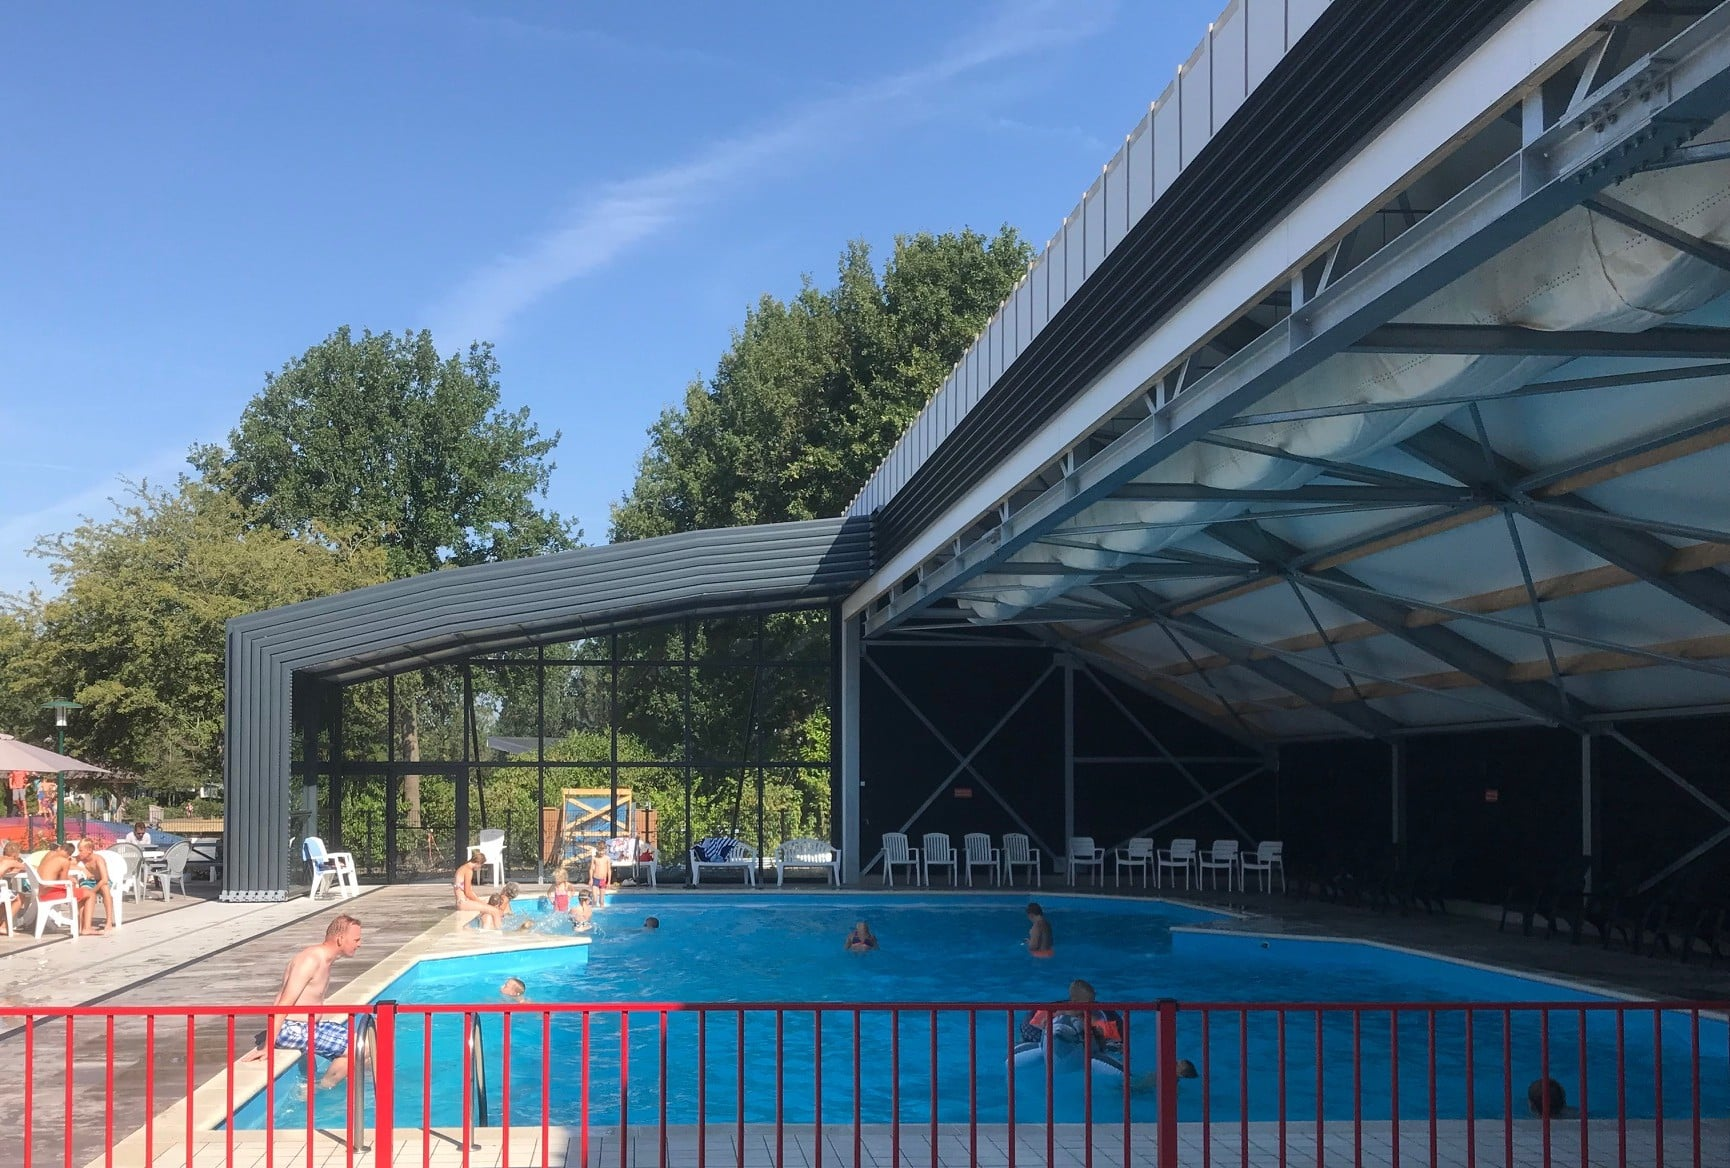 Public pool enclosures - Rheezerveen, Netherlands